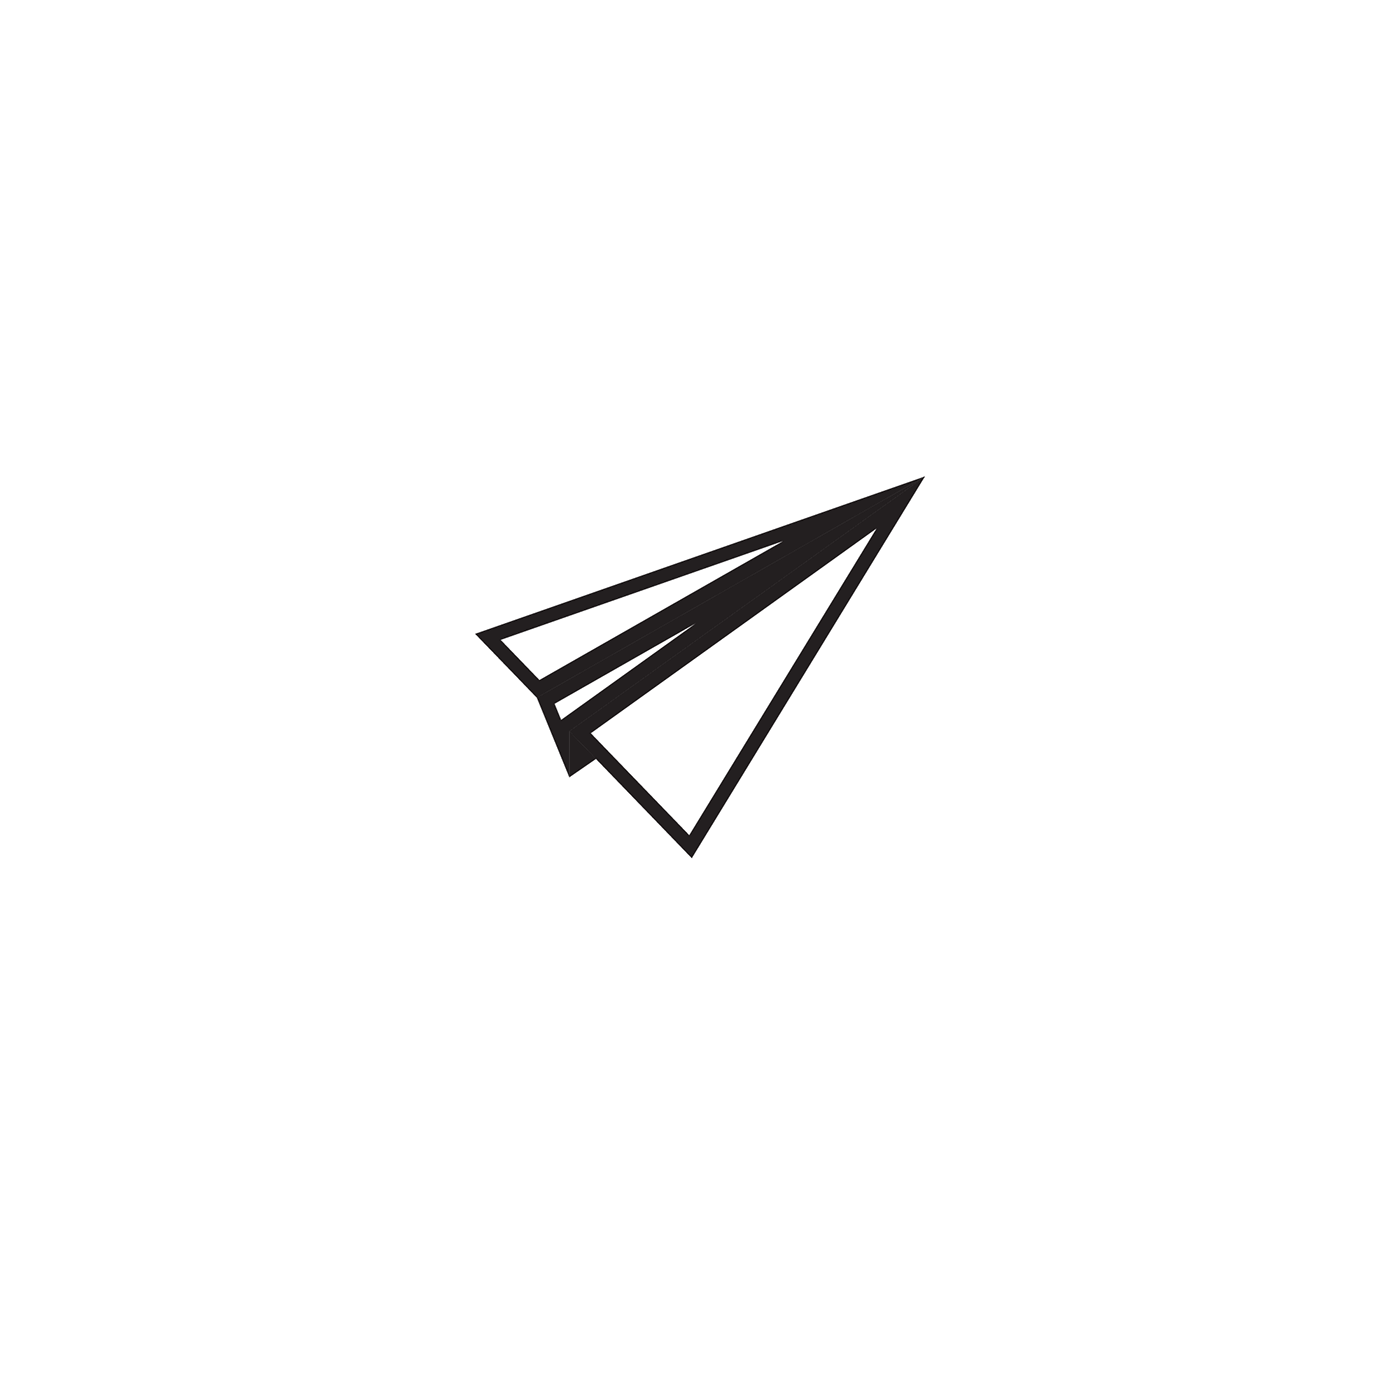 paper airplane logo mark on behance